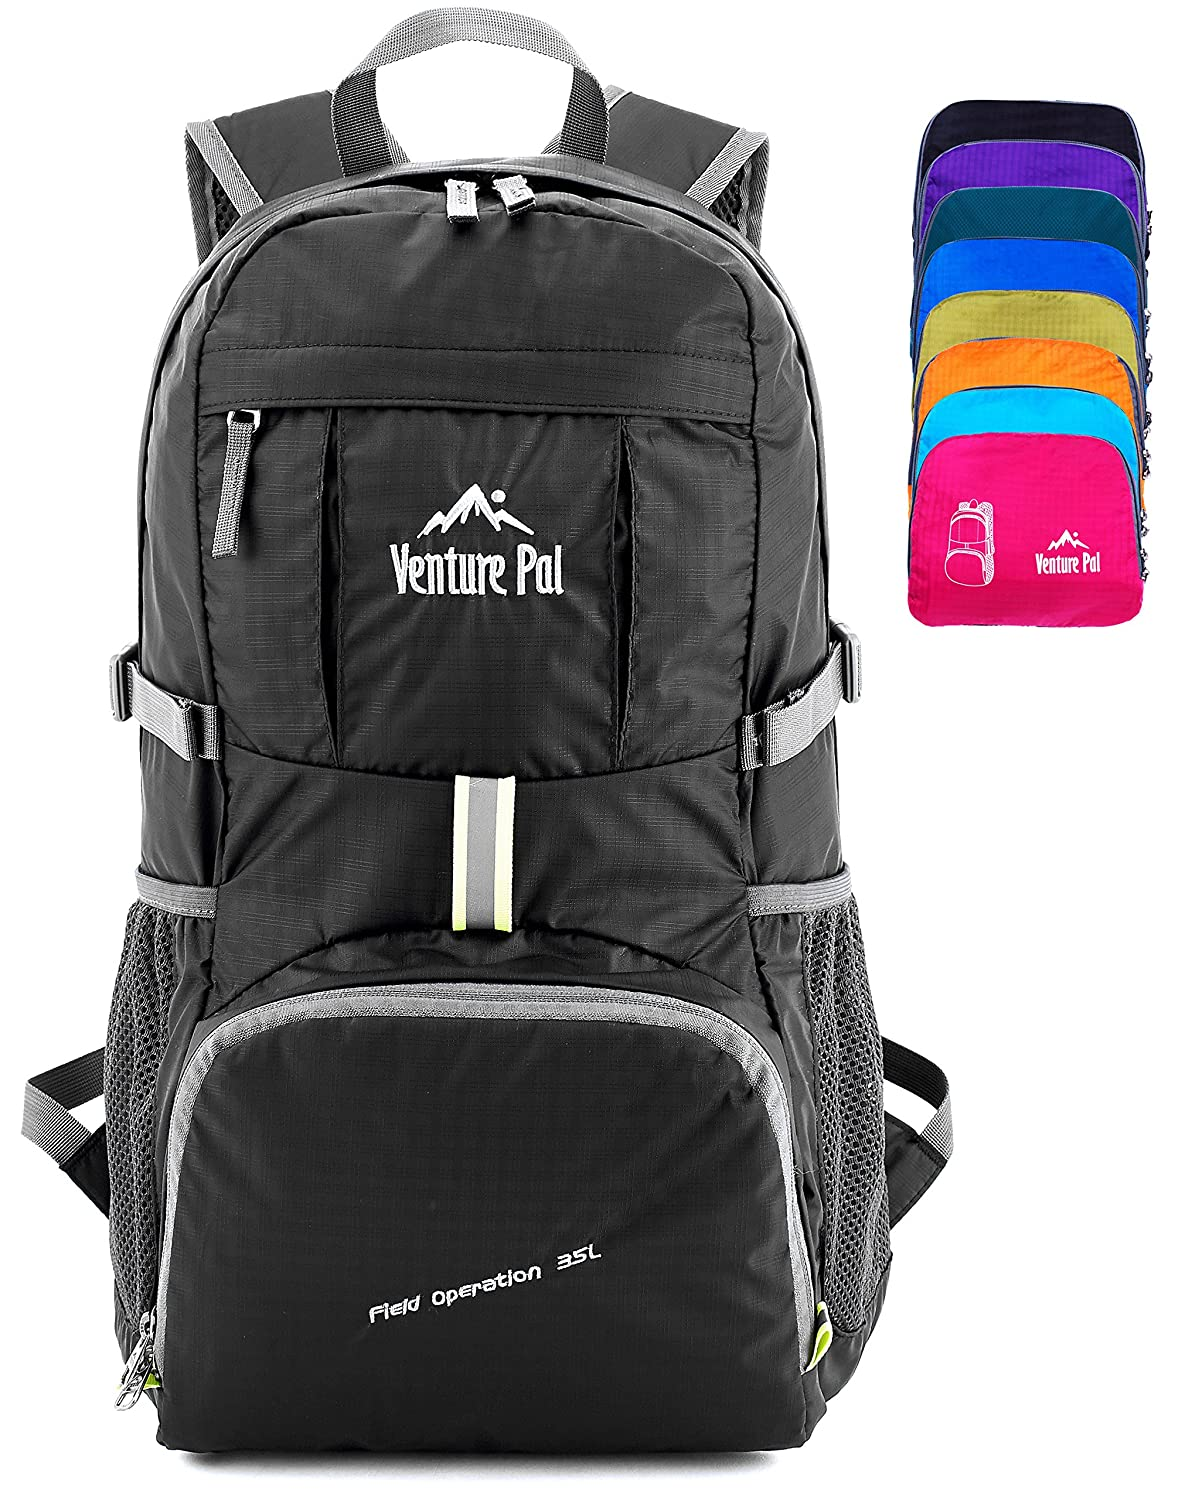 449416fd61 Amazon.com   Venture Pal Ultralight Lightweight Packable Foldable Travel  Camping Hiking Outdoor Sports Backpack Daypack (Black)   Sports   Outdoors